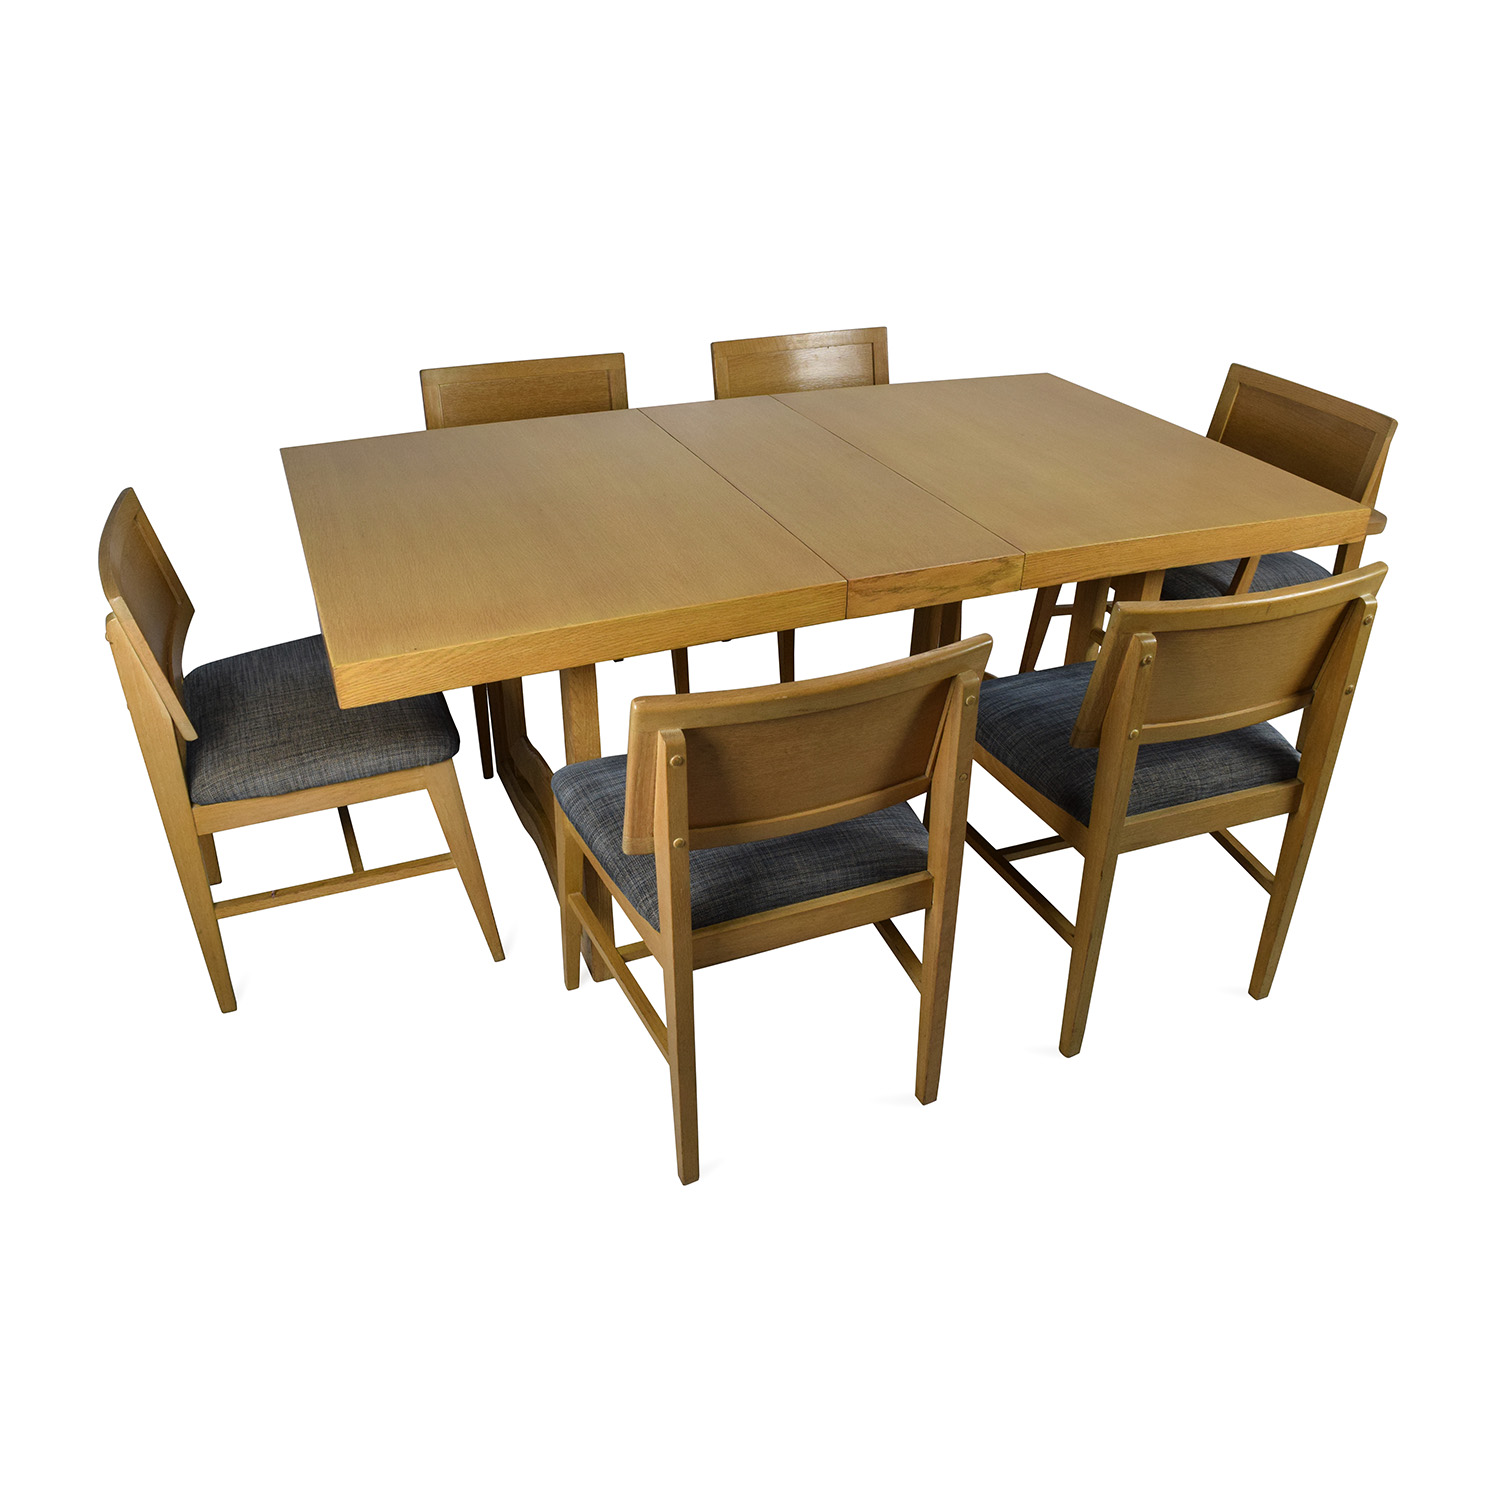 59 off mid century extension dining table and six chairs tables. Black Bedroom Furniture Sets. Home Design Ideas